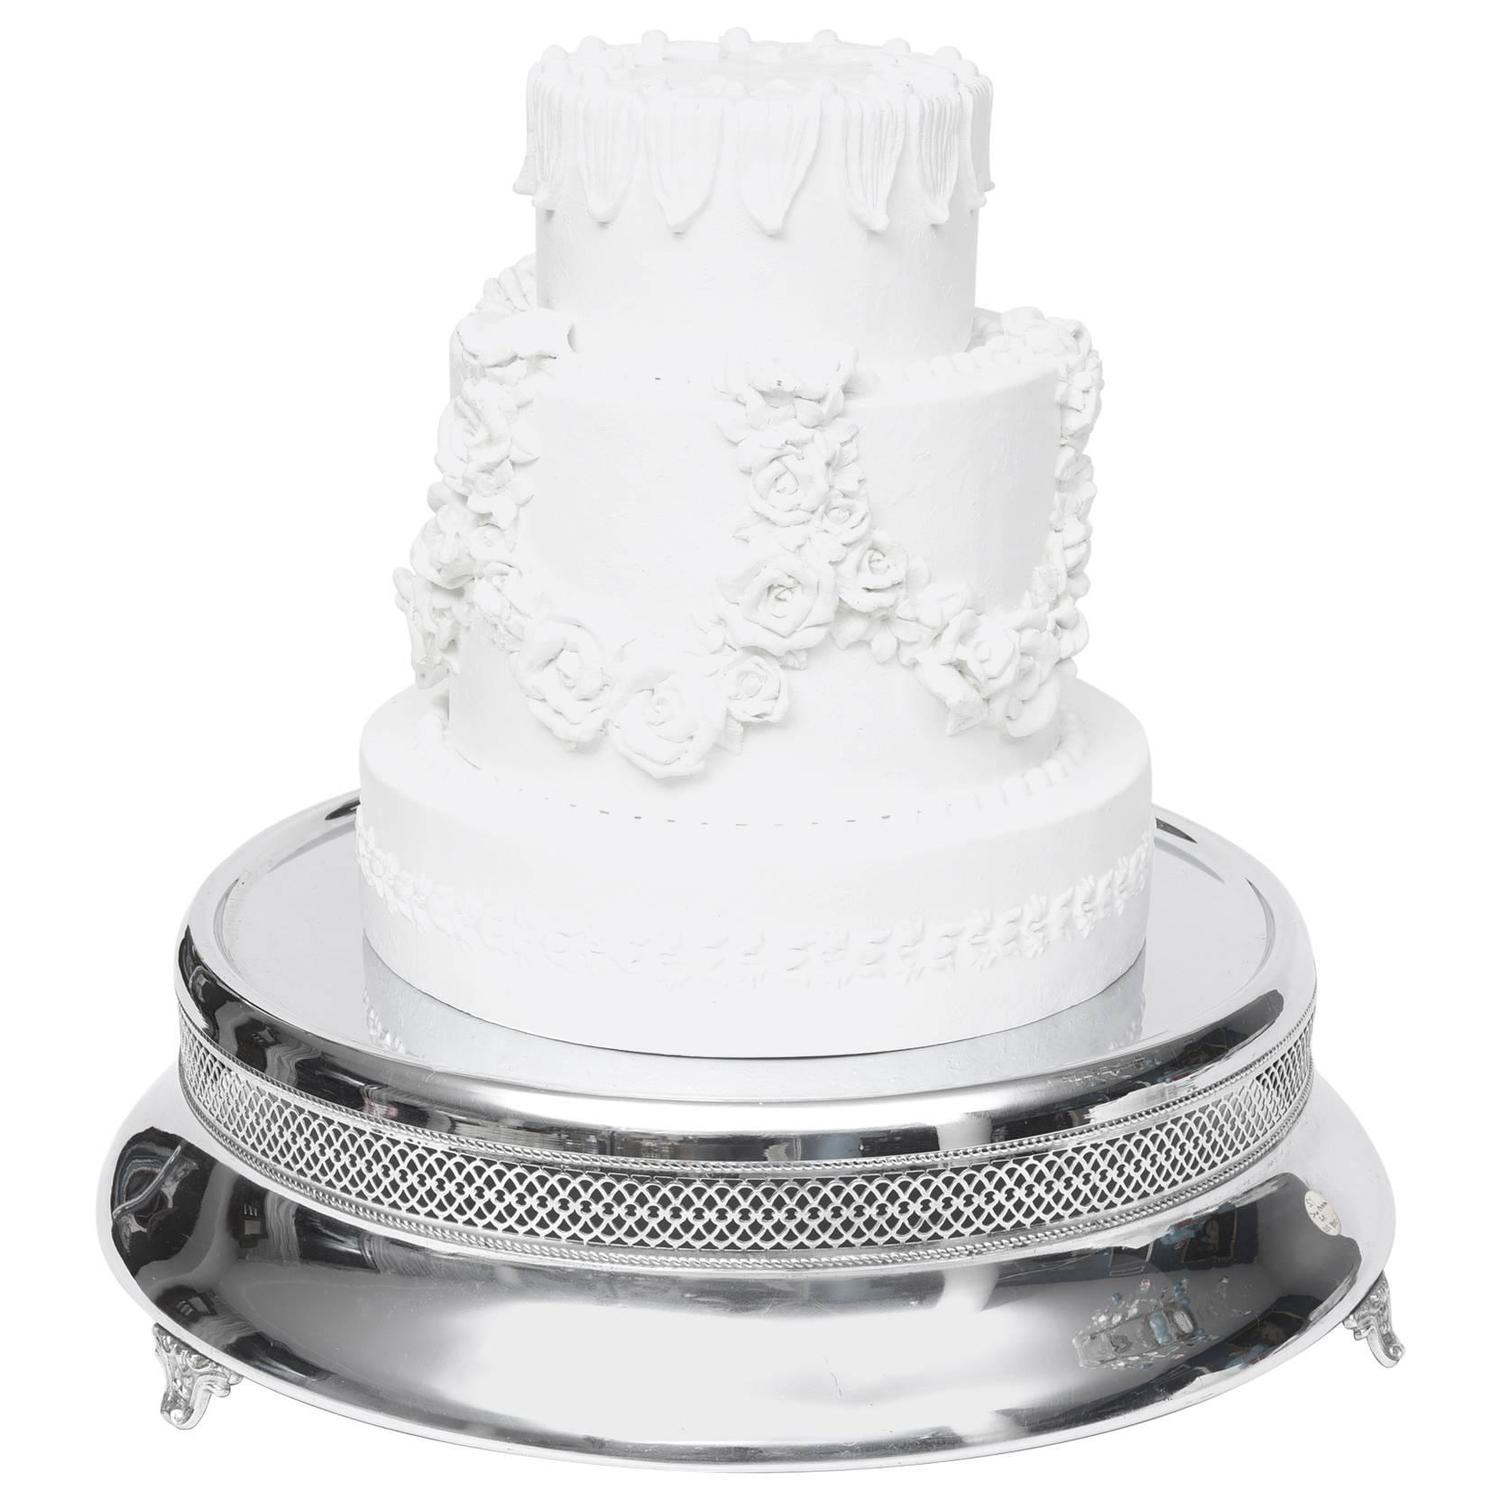 art deco wedding cake stand plateau centerpiece for sale at 1stdibs